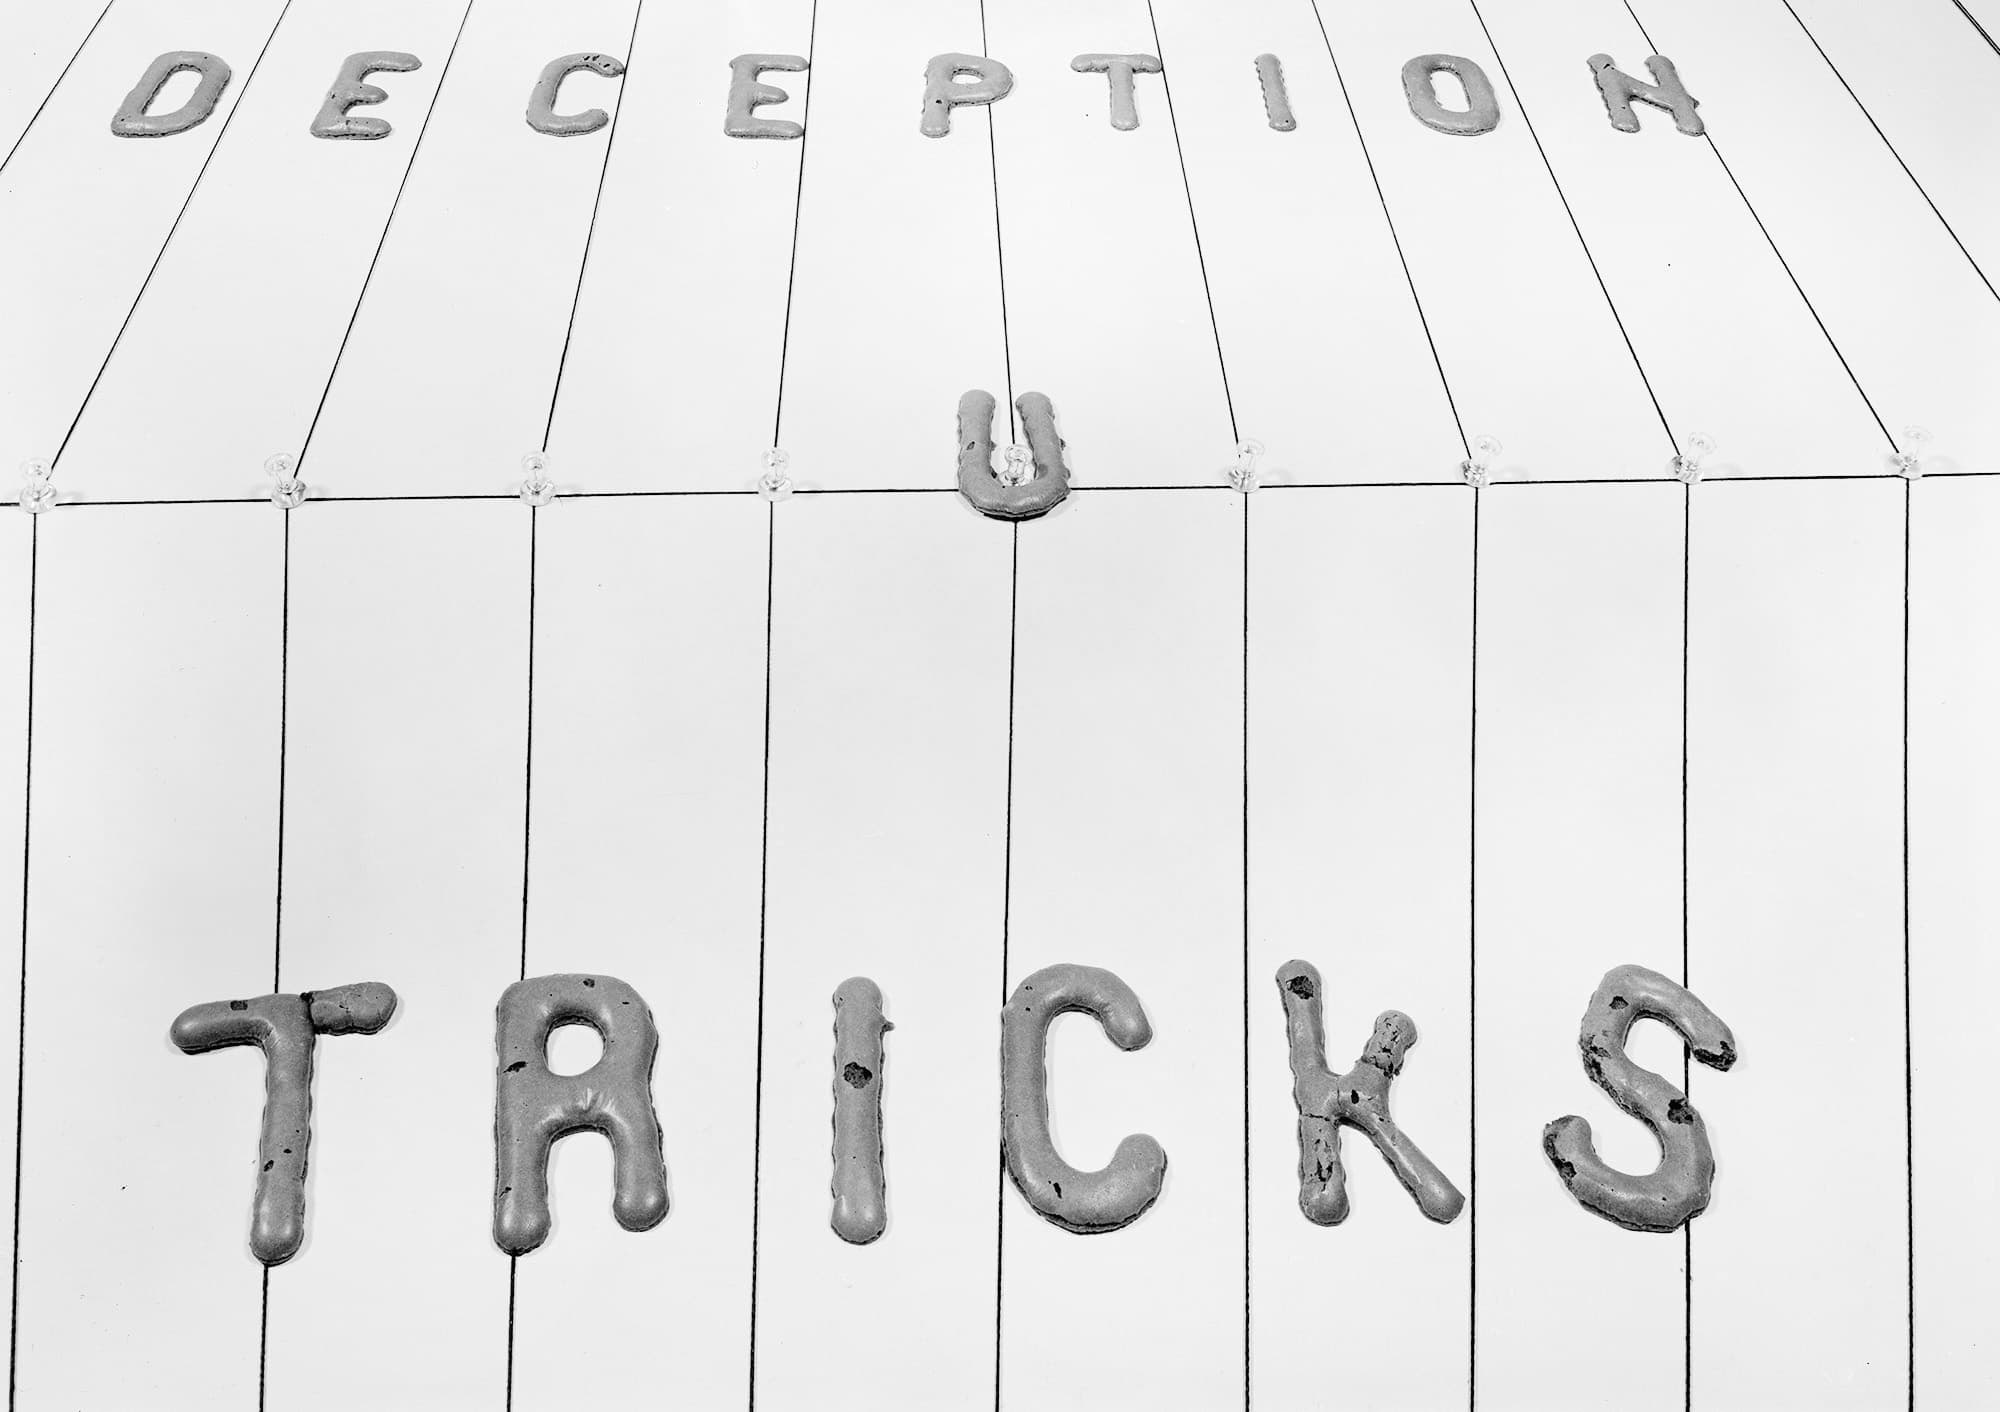 Deception Tricks You, 1977